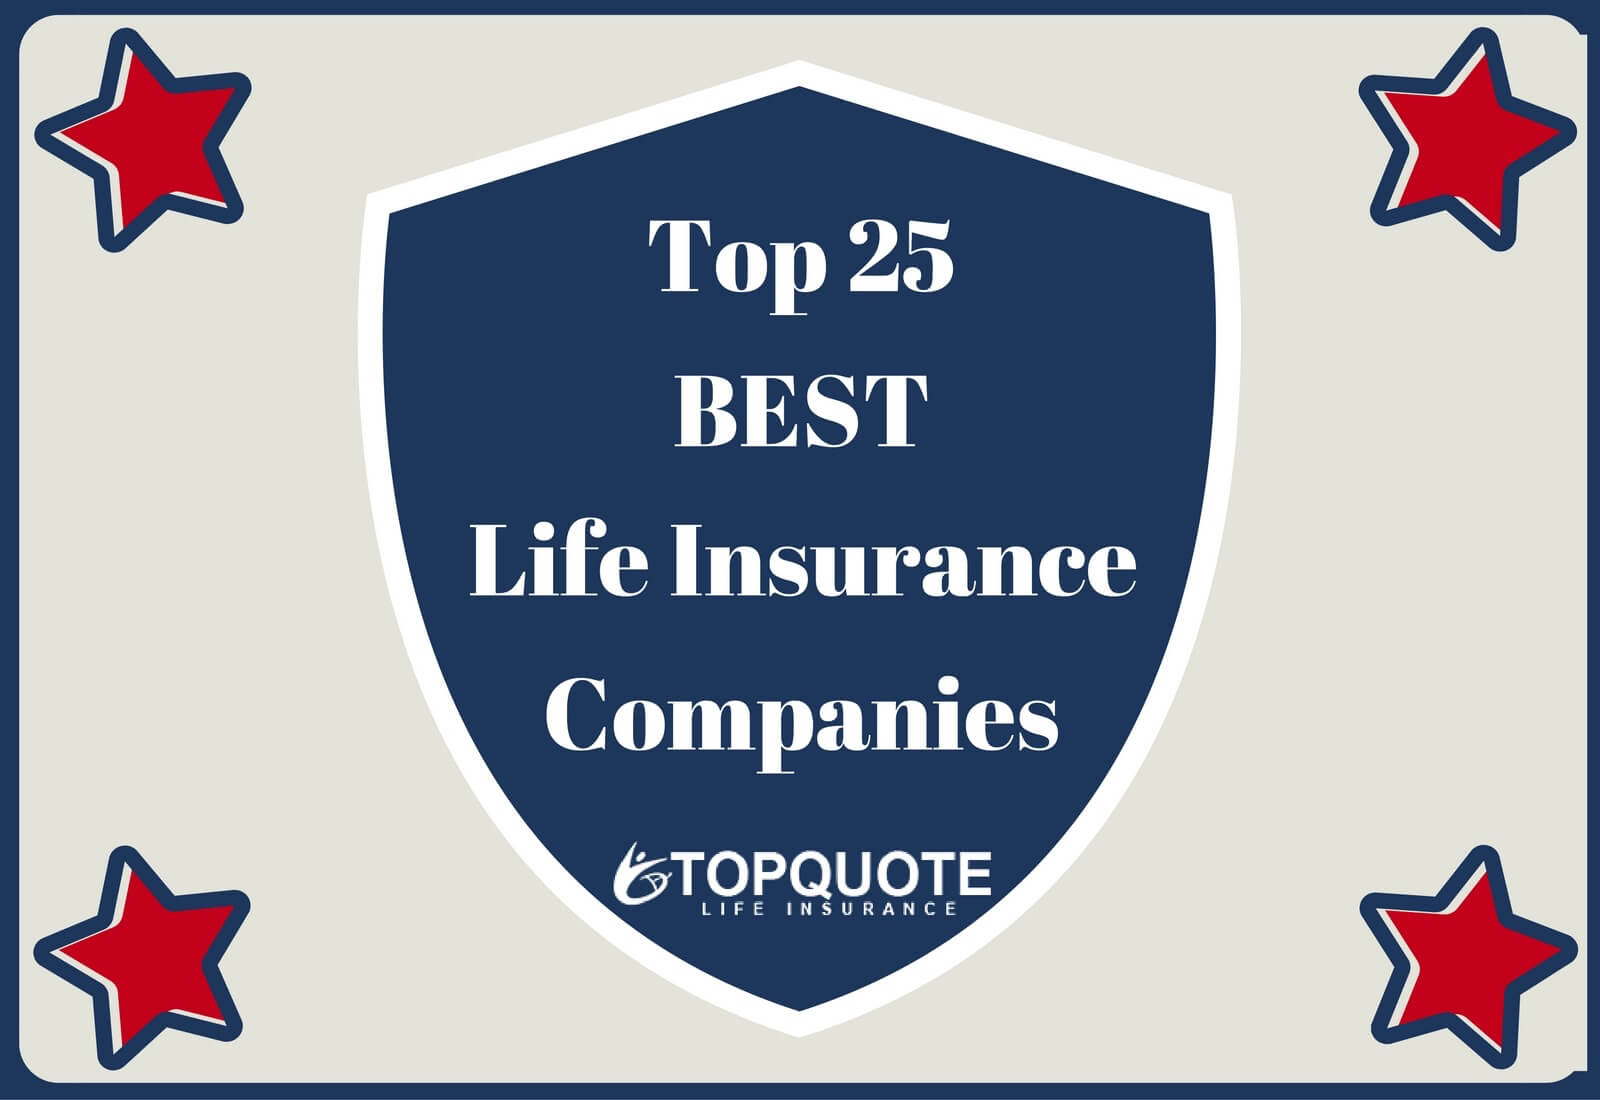 Universal Life Insurance Quotes Online Top 25 Best Life Insurance Companies Choosing The Perfect Coverage